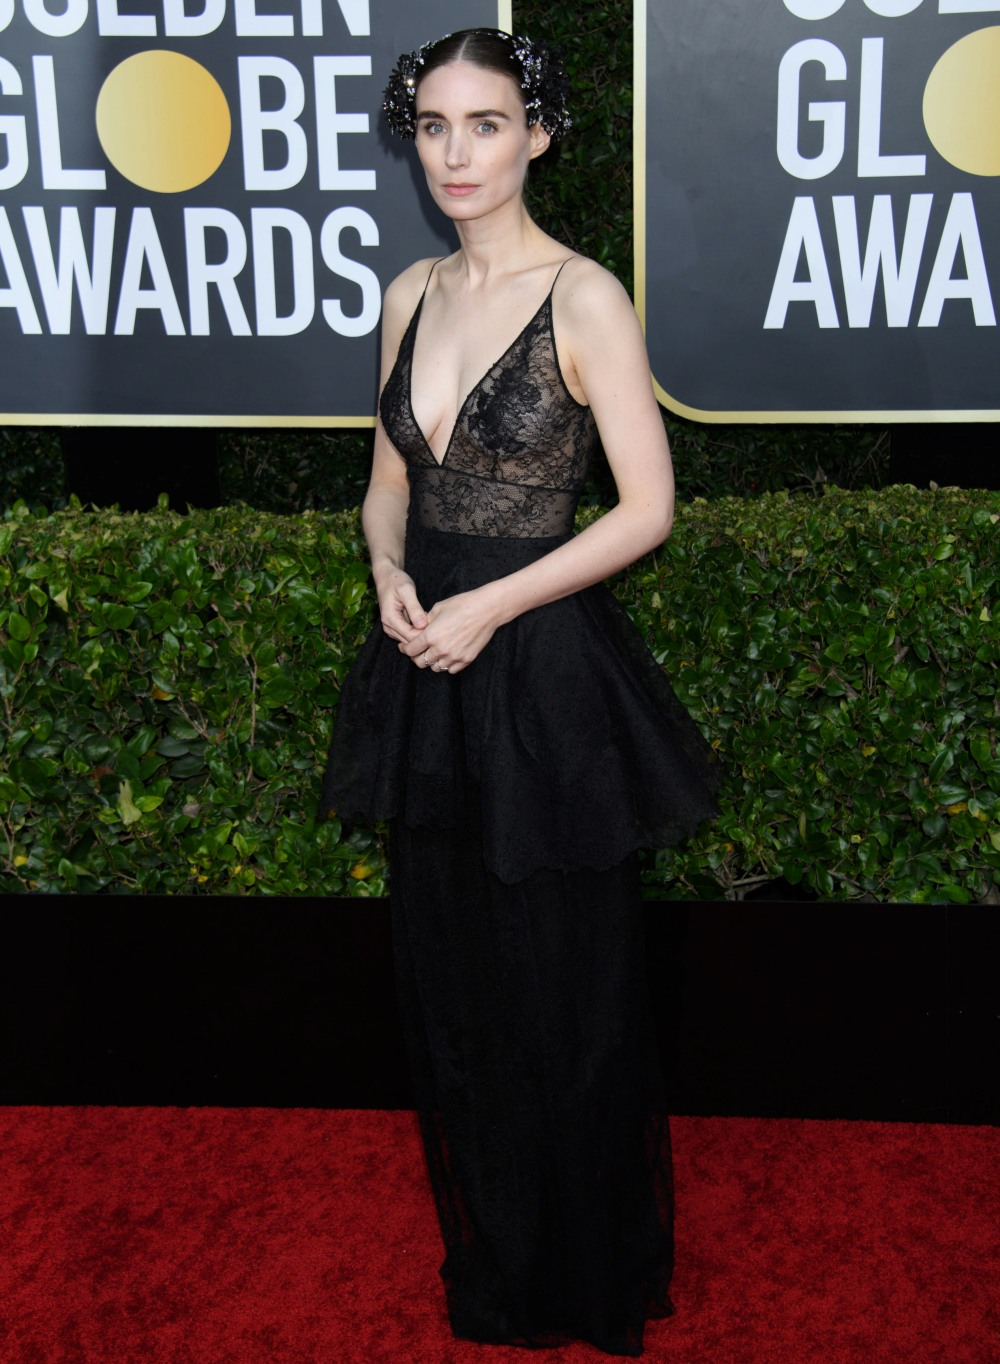 Rooney Mara arrives at the 77th Annual Golden Globe Awards at the Beverly Hilton in Beverly Hills, CA on Sunday, January 5, 2020.